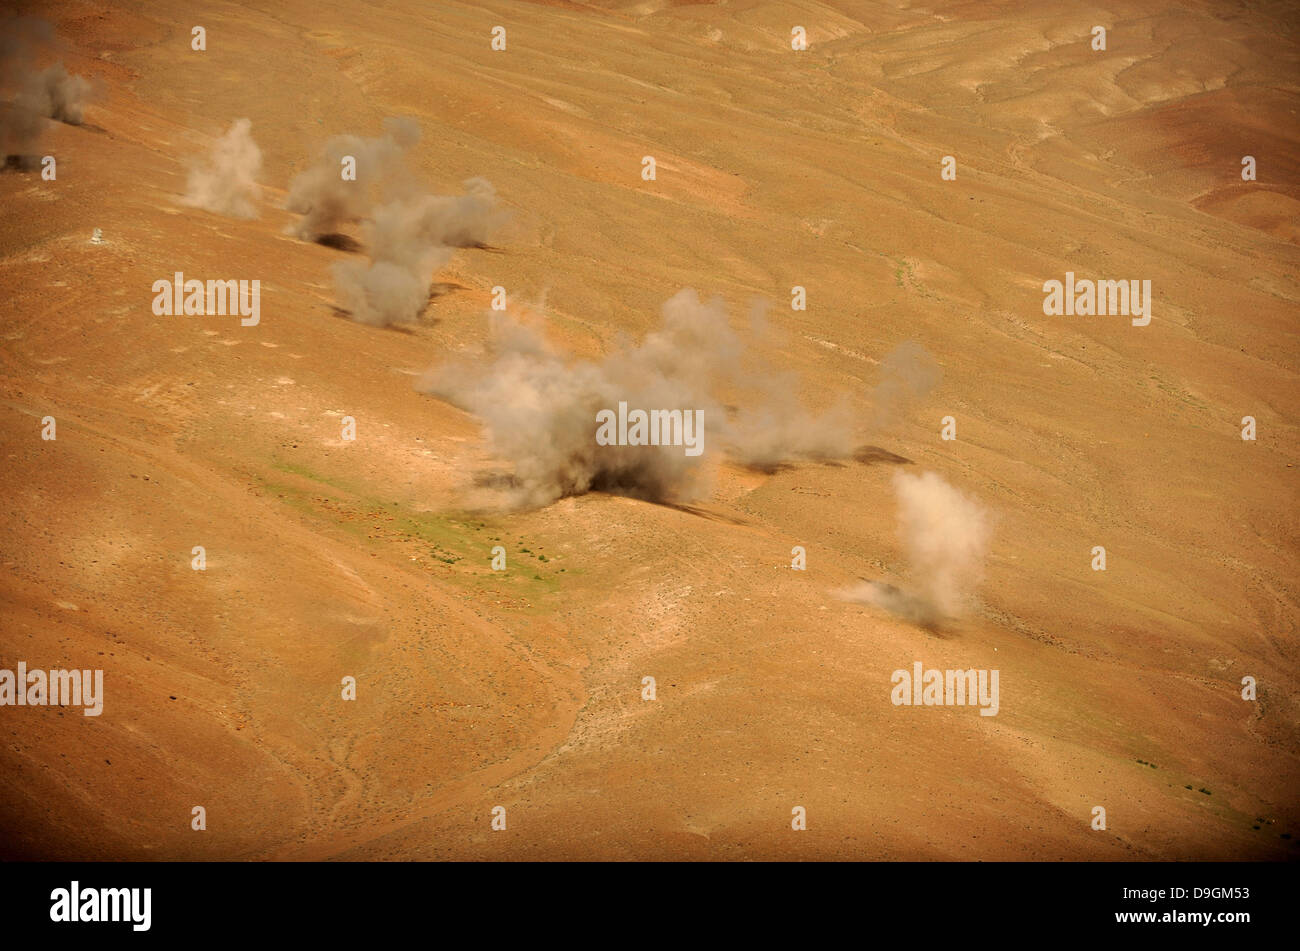 Dust rises from the impact points of KP long-guided rockets. - Stock Image